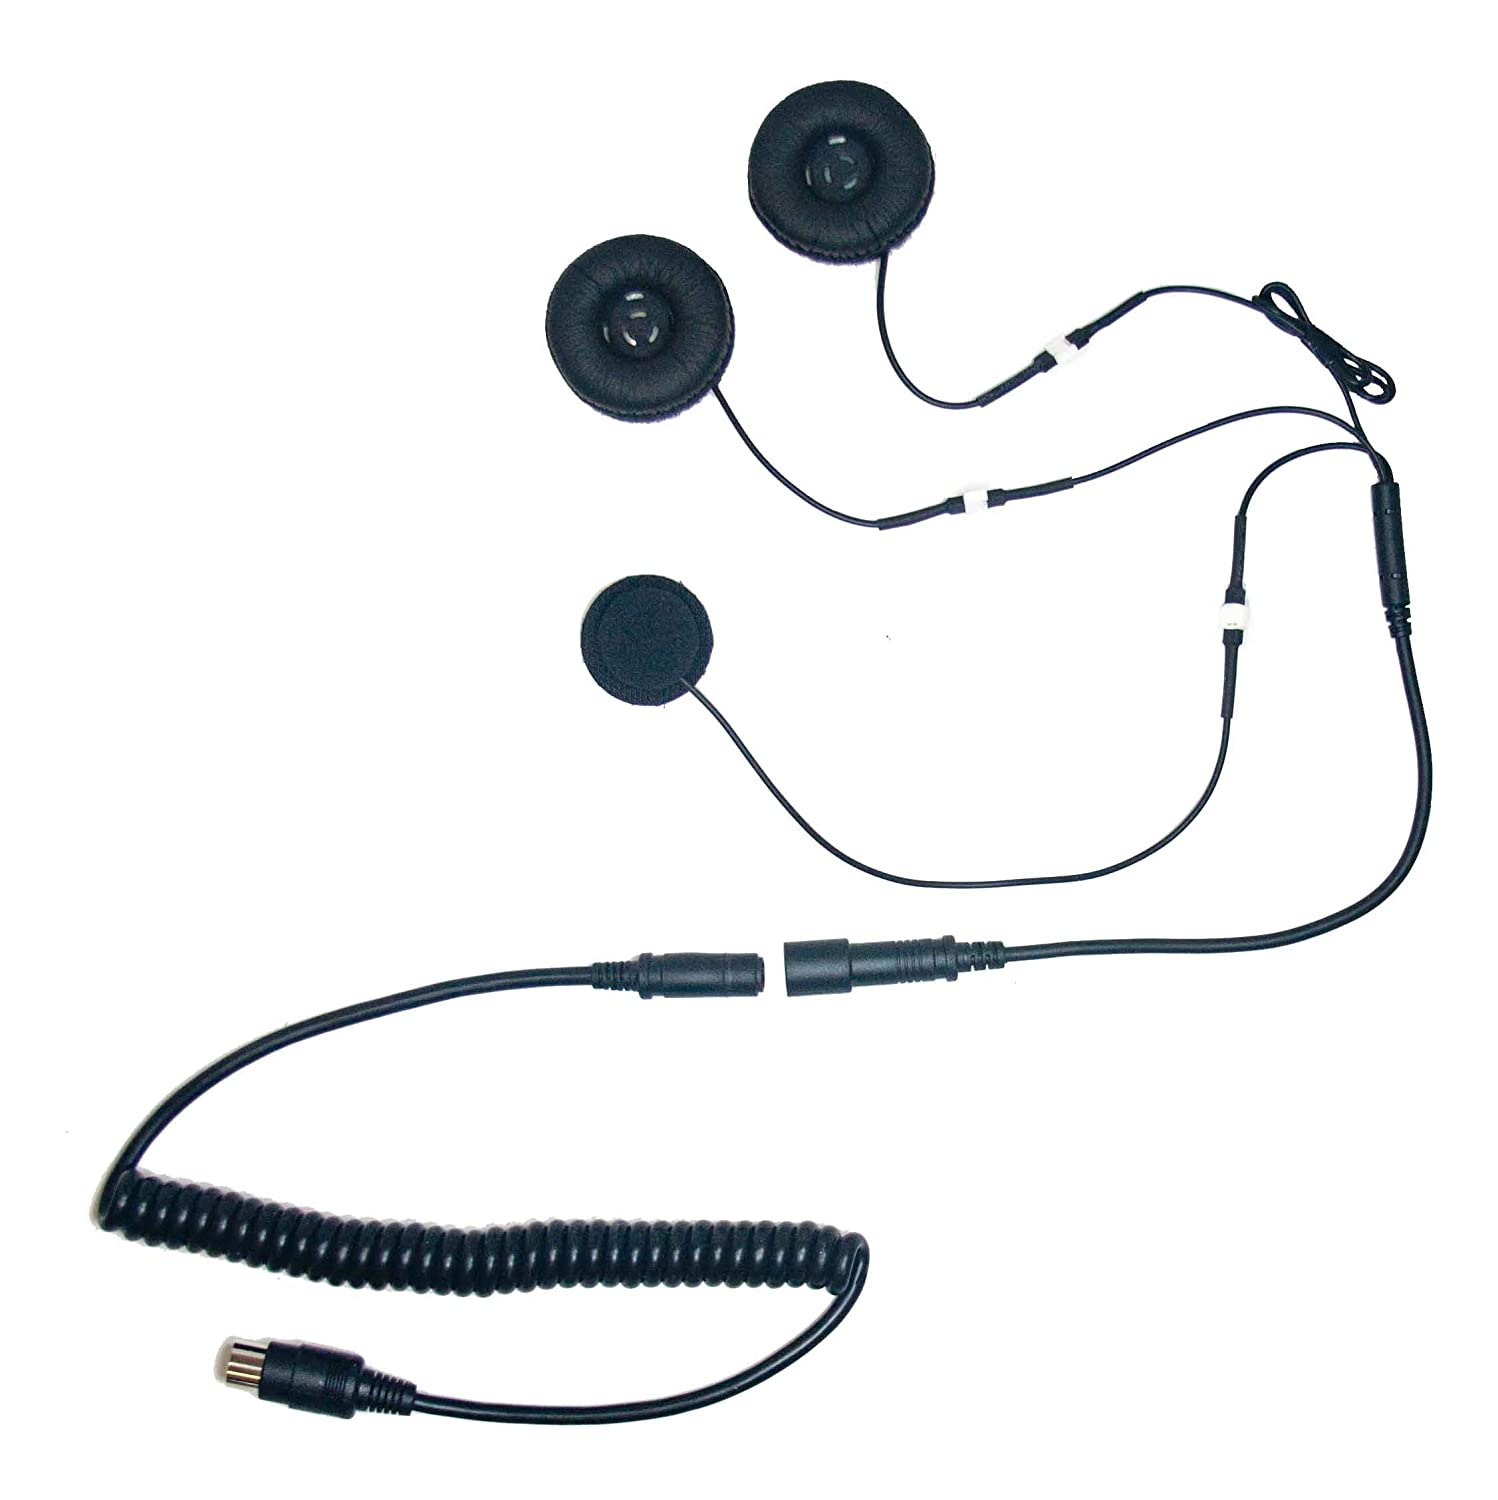 Hs G110p 5 Pin Stereo Headset With Soft Wire Microphone 2003 Honda Goldwing Wiring For Automotive